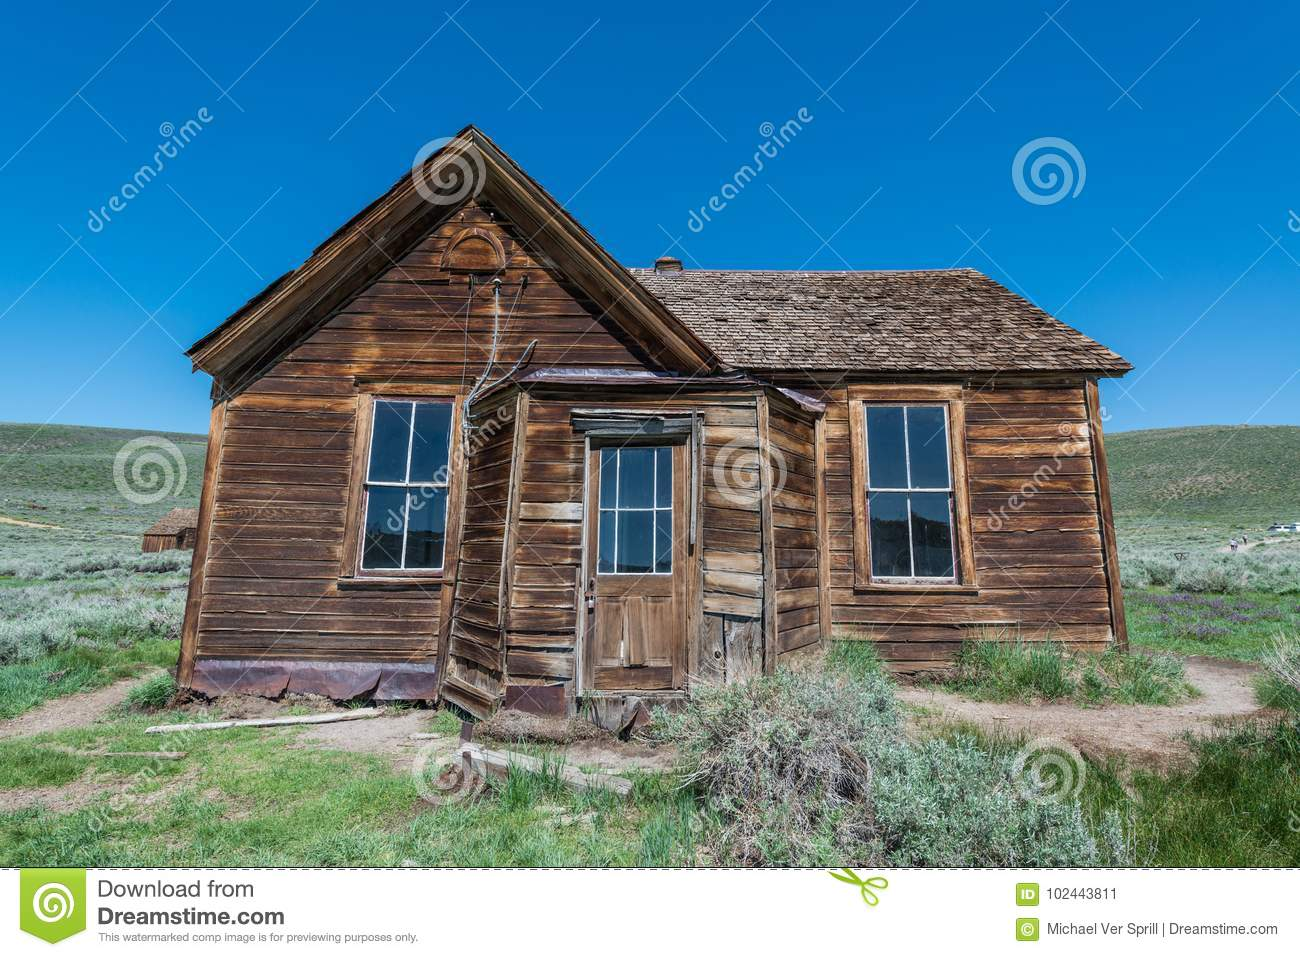 Old Home At Bodie Ghost Town Stock Image - Image of generator, house